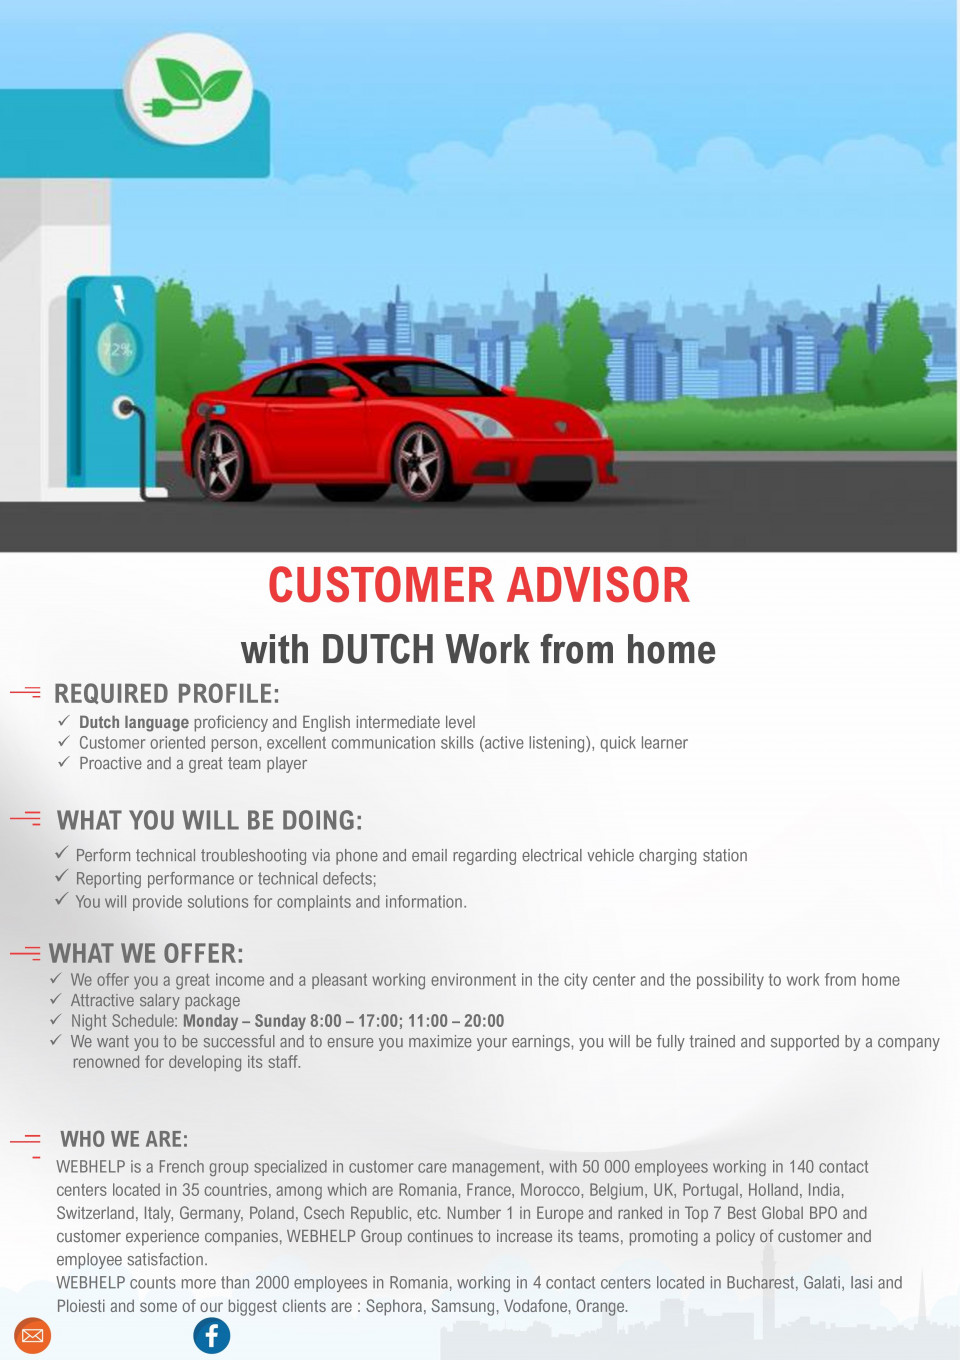 CUSTOMER ADVISOR with Dutch Work from home